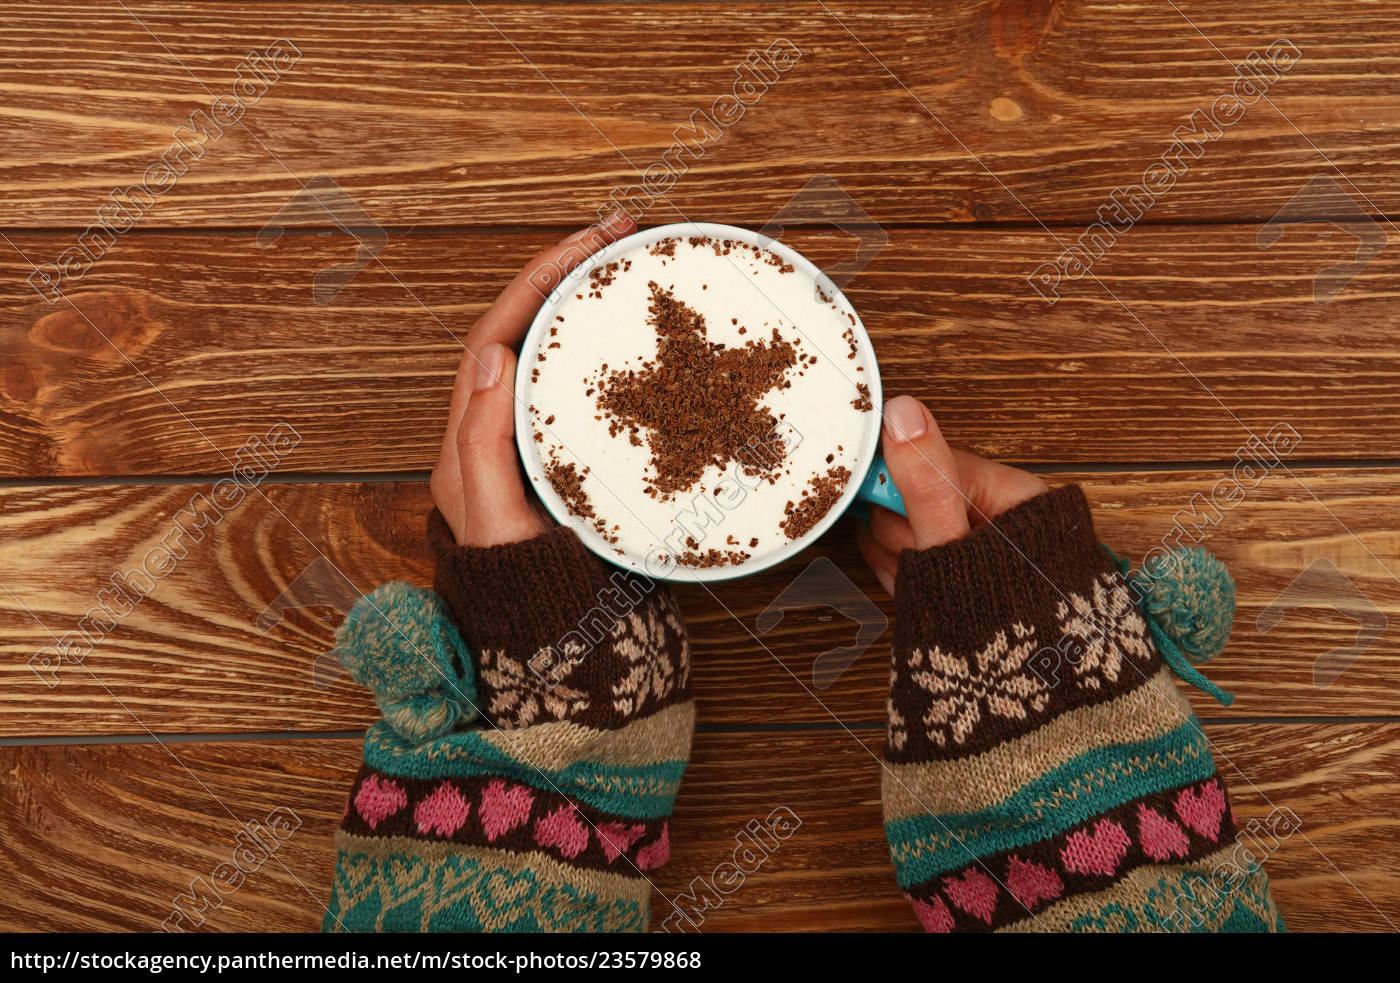 woman, hands, hold, full, latte, cappuccino - 23579868